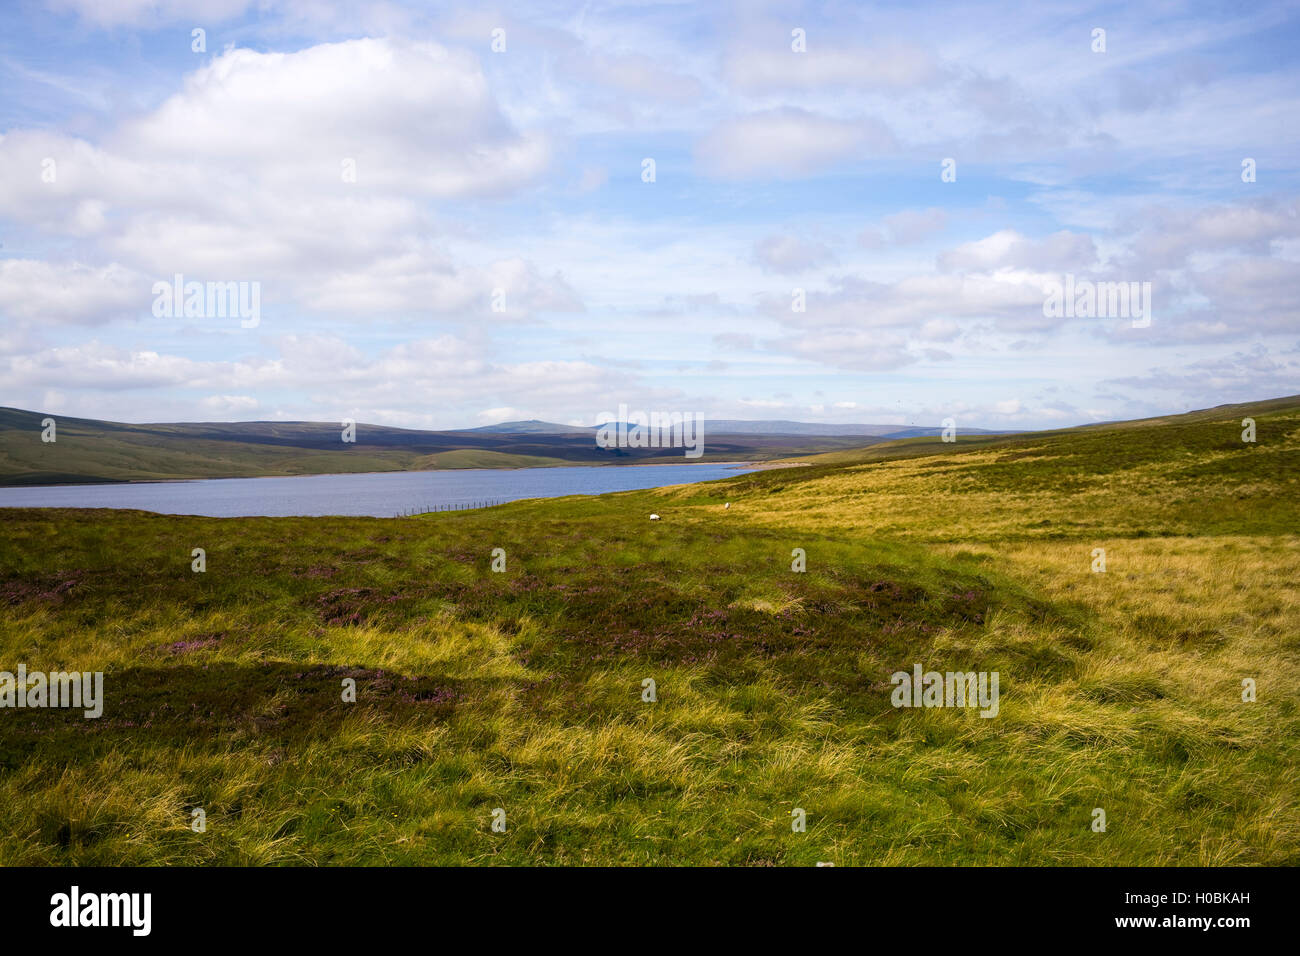 Cow Green Reservoir, Upper Teesdale National Nature Reserve, Durham, England, UK - Stock Image